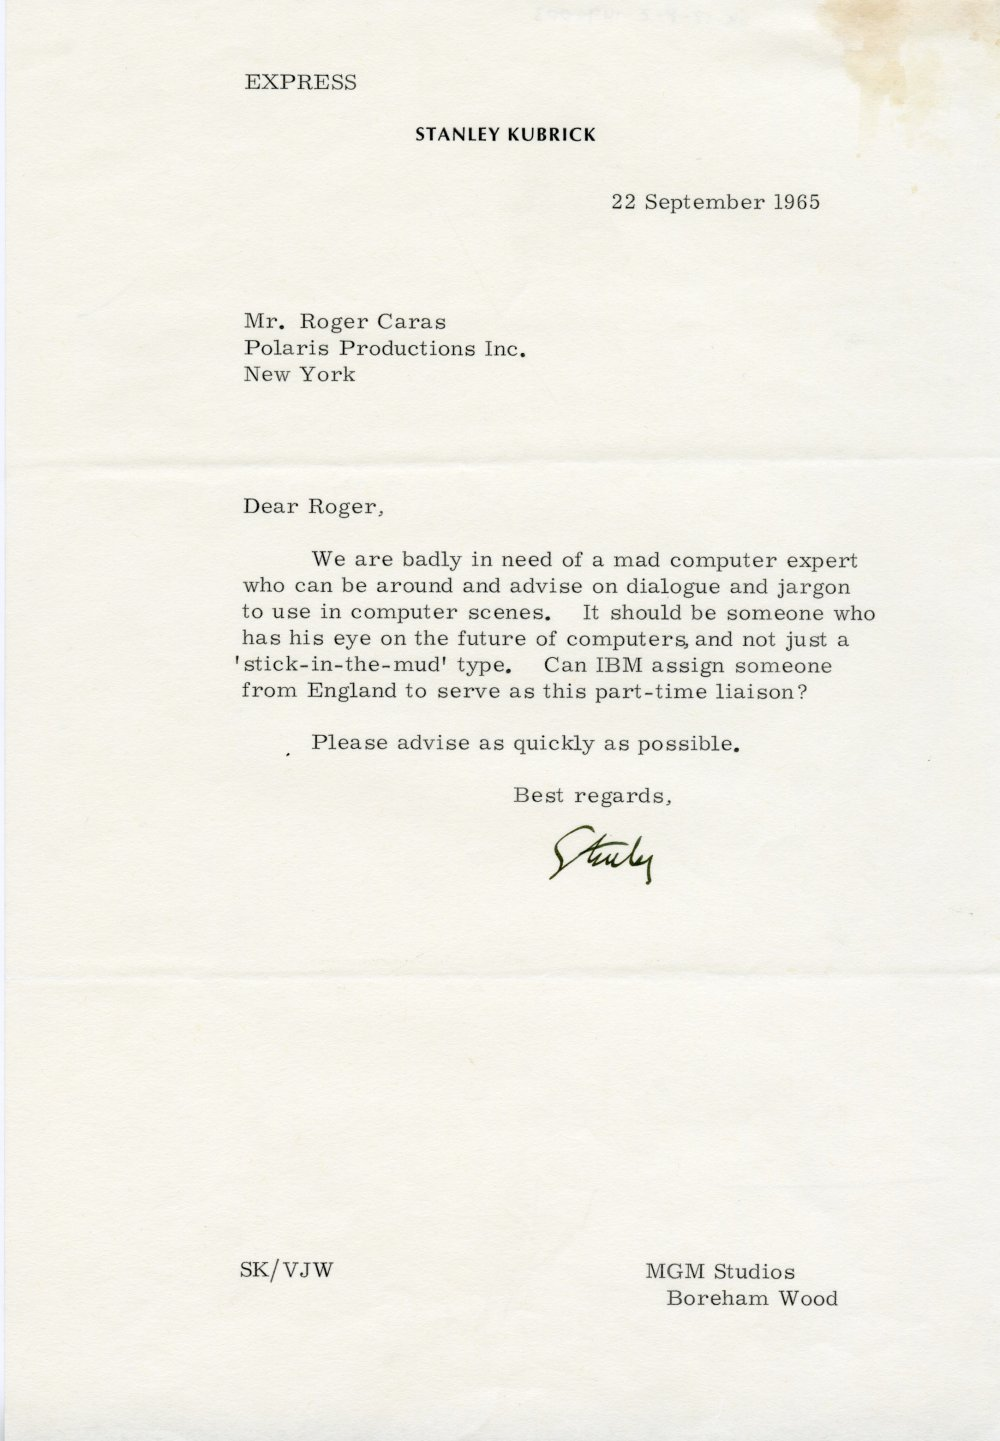 Memo to Roger Caras from Stanley Kubrick